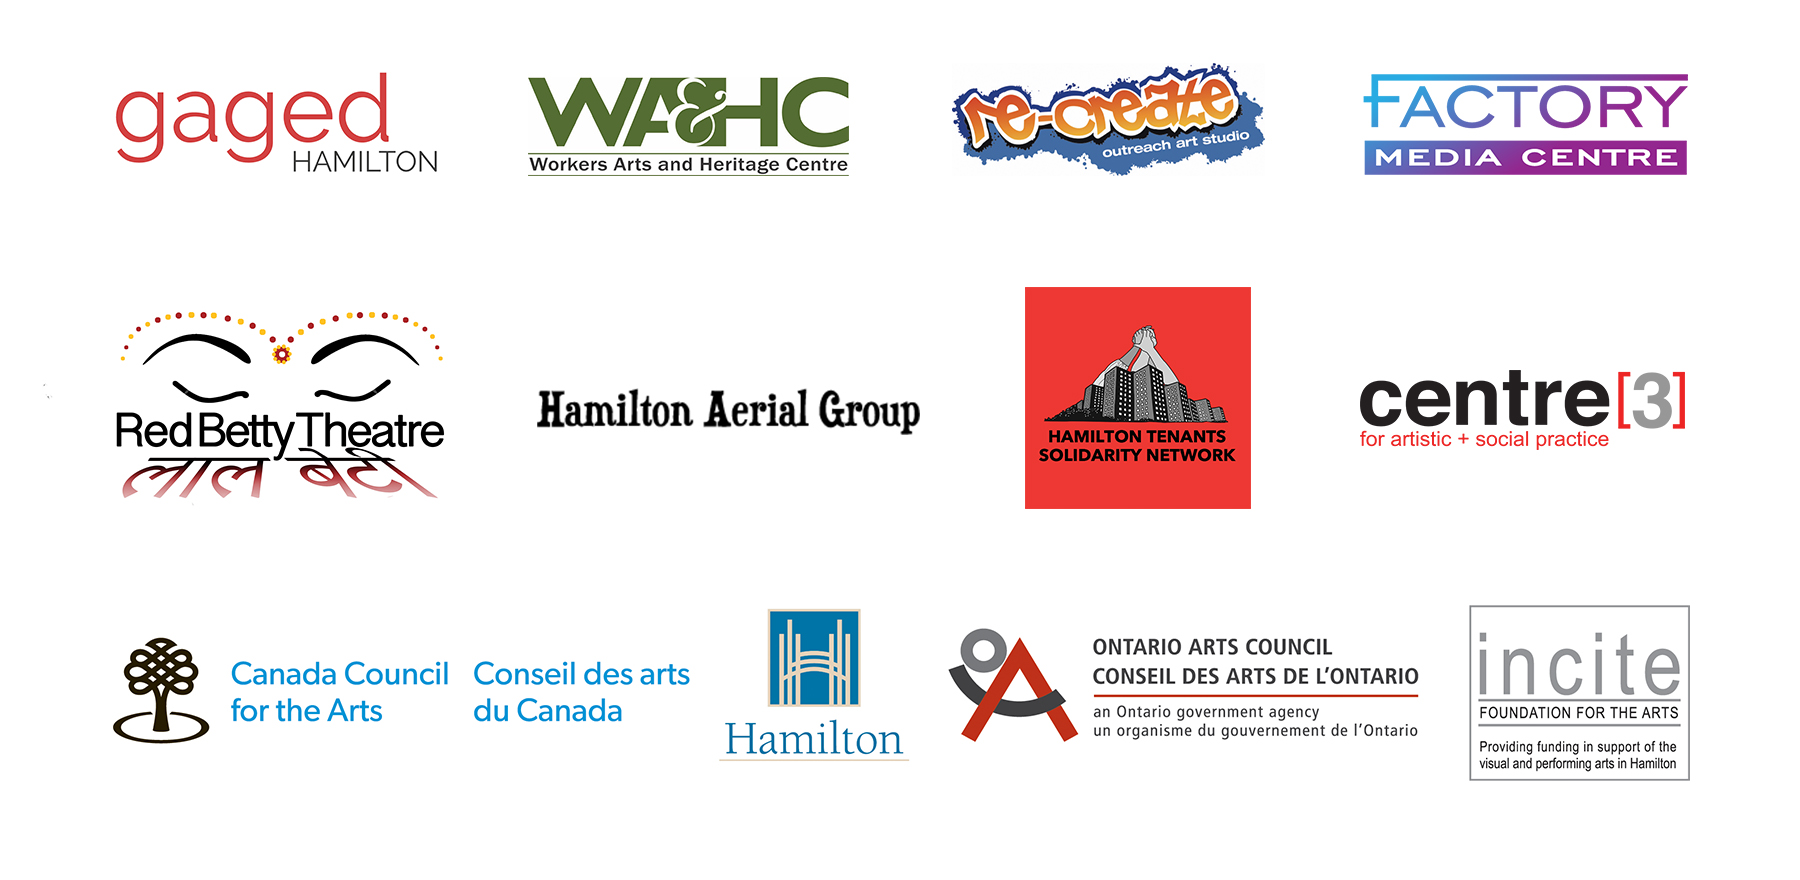 An Image of the various logos of Pressure Points' funding and programming partners: Gaged Hamilton, Workers Arts and Heritage Centre, Re-Create Outreach Art Studio, Factory Media Centre, Red Betty Theatre, Hamilton Aerial Group, Hamilton Tenants Solidarity Network, Centre[3] for artistic + social practice, Canada Council for the Arts, The City of Hamilton, Ontario Arts Council and Incite Foundation for the Arts.